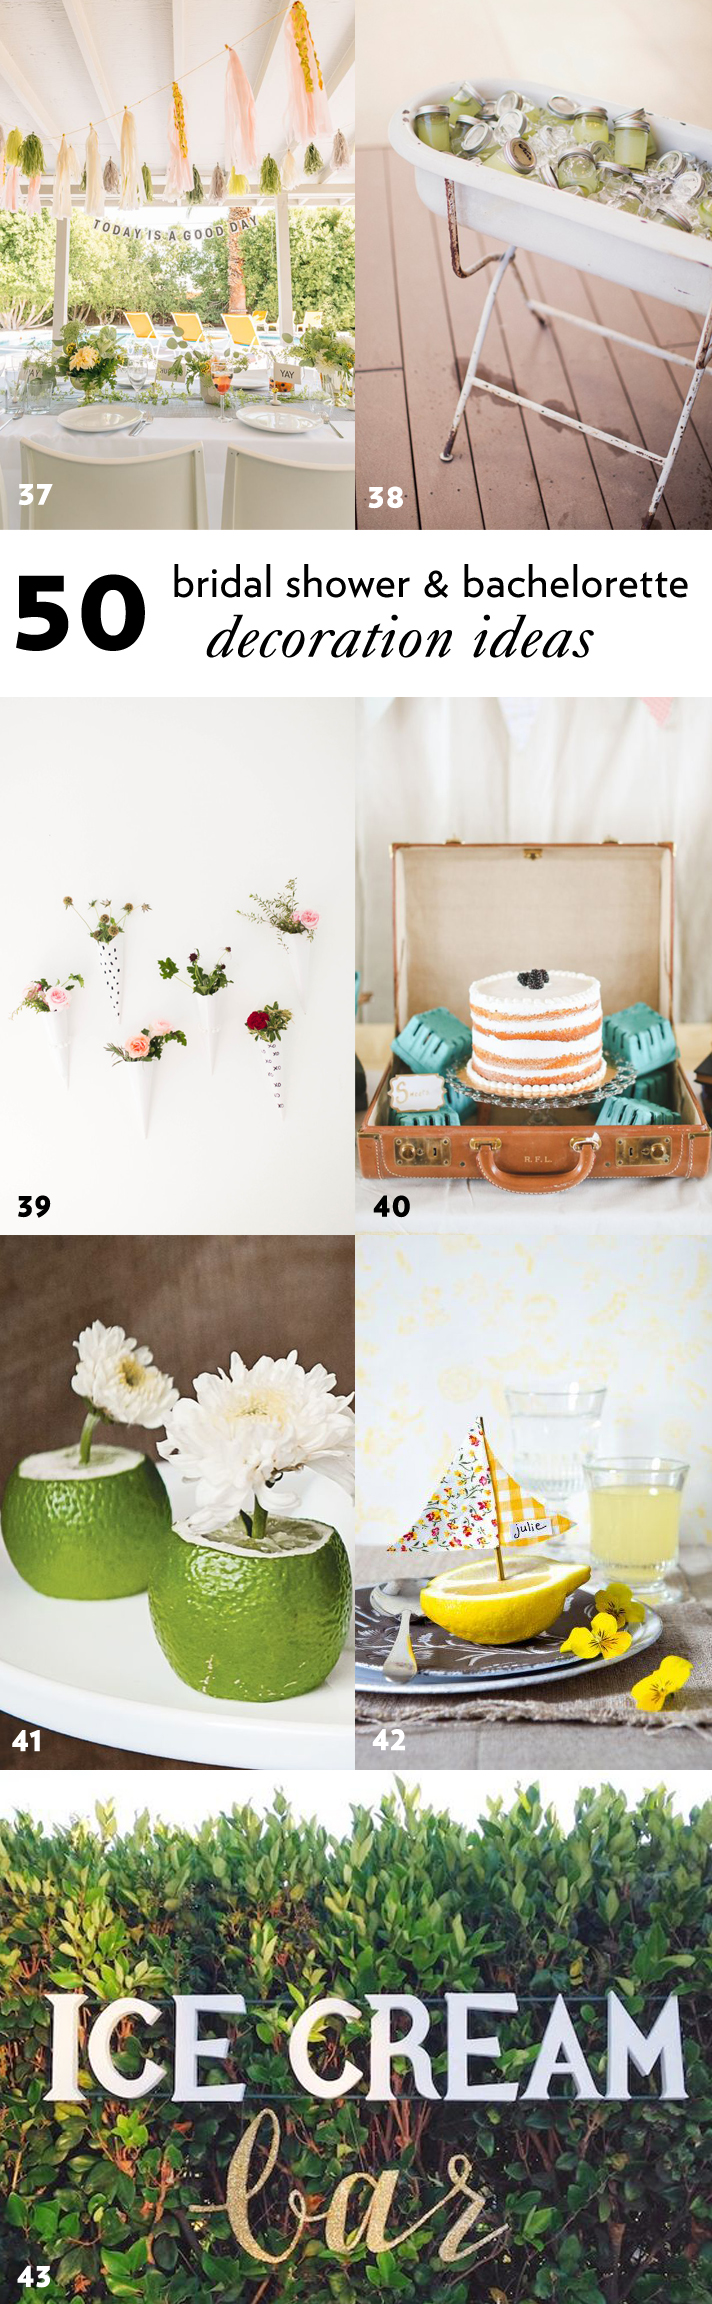 50 Simple And Stylish Diy Bridal Shower Bachelorette